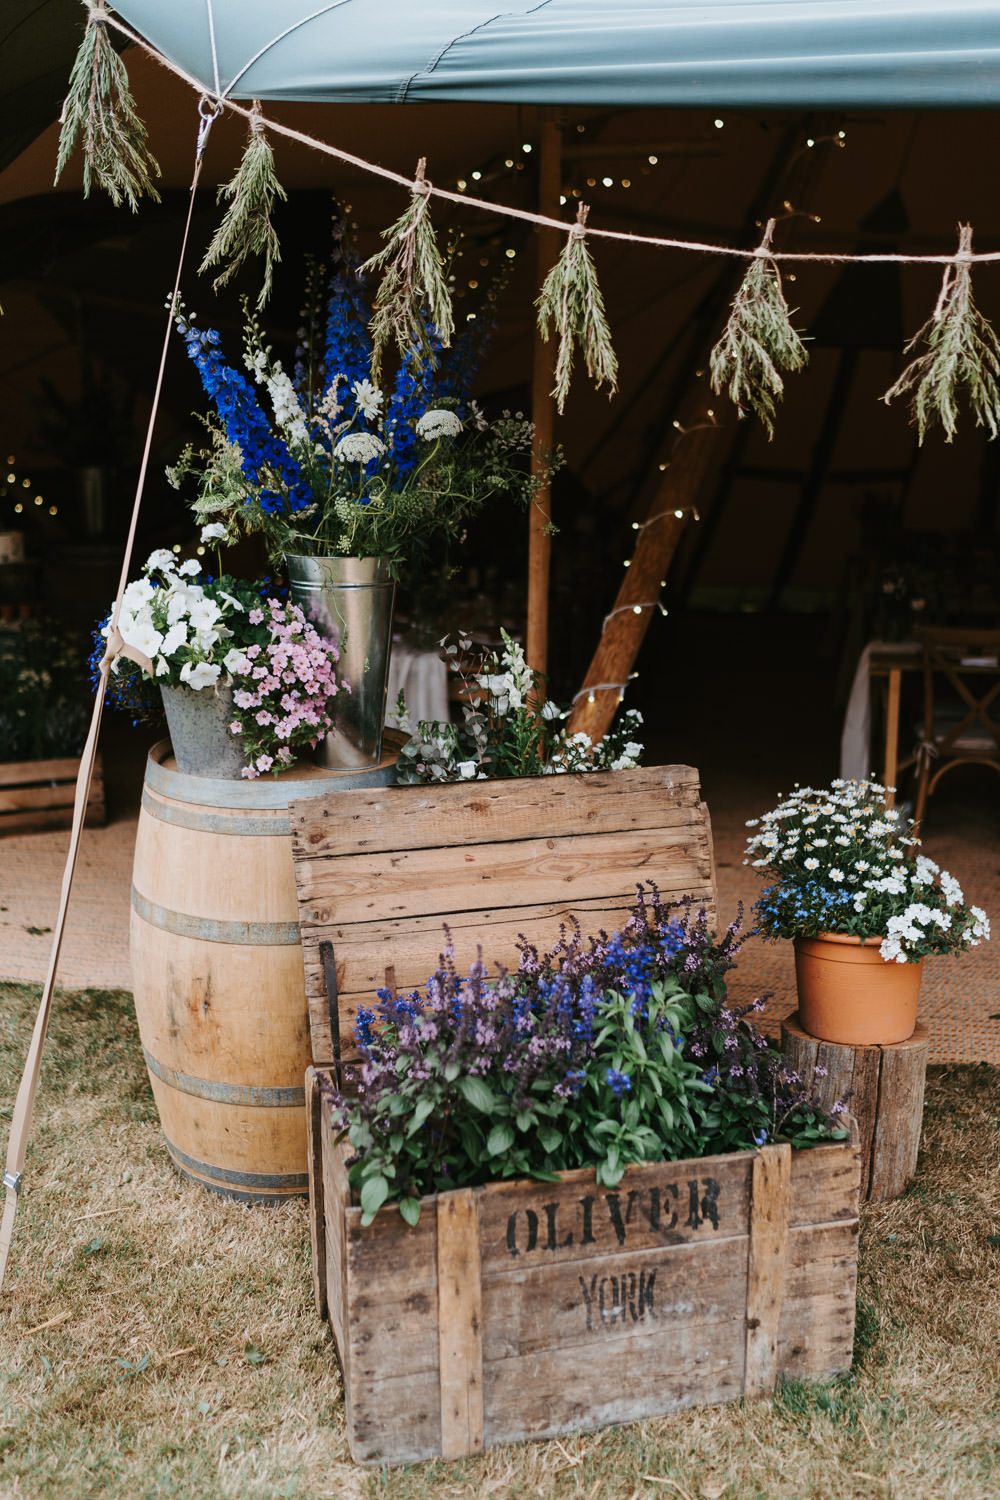 Wooden Box Crate Flowers Decor Tipi Country Festival Wedding Jonny Gouldstone Photography